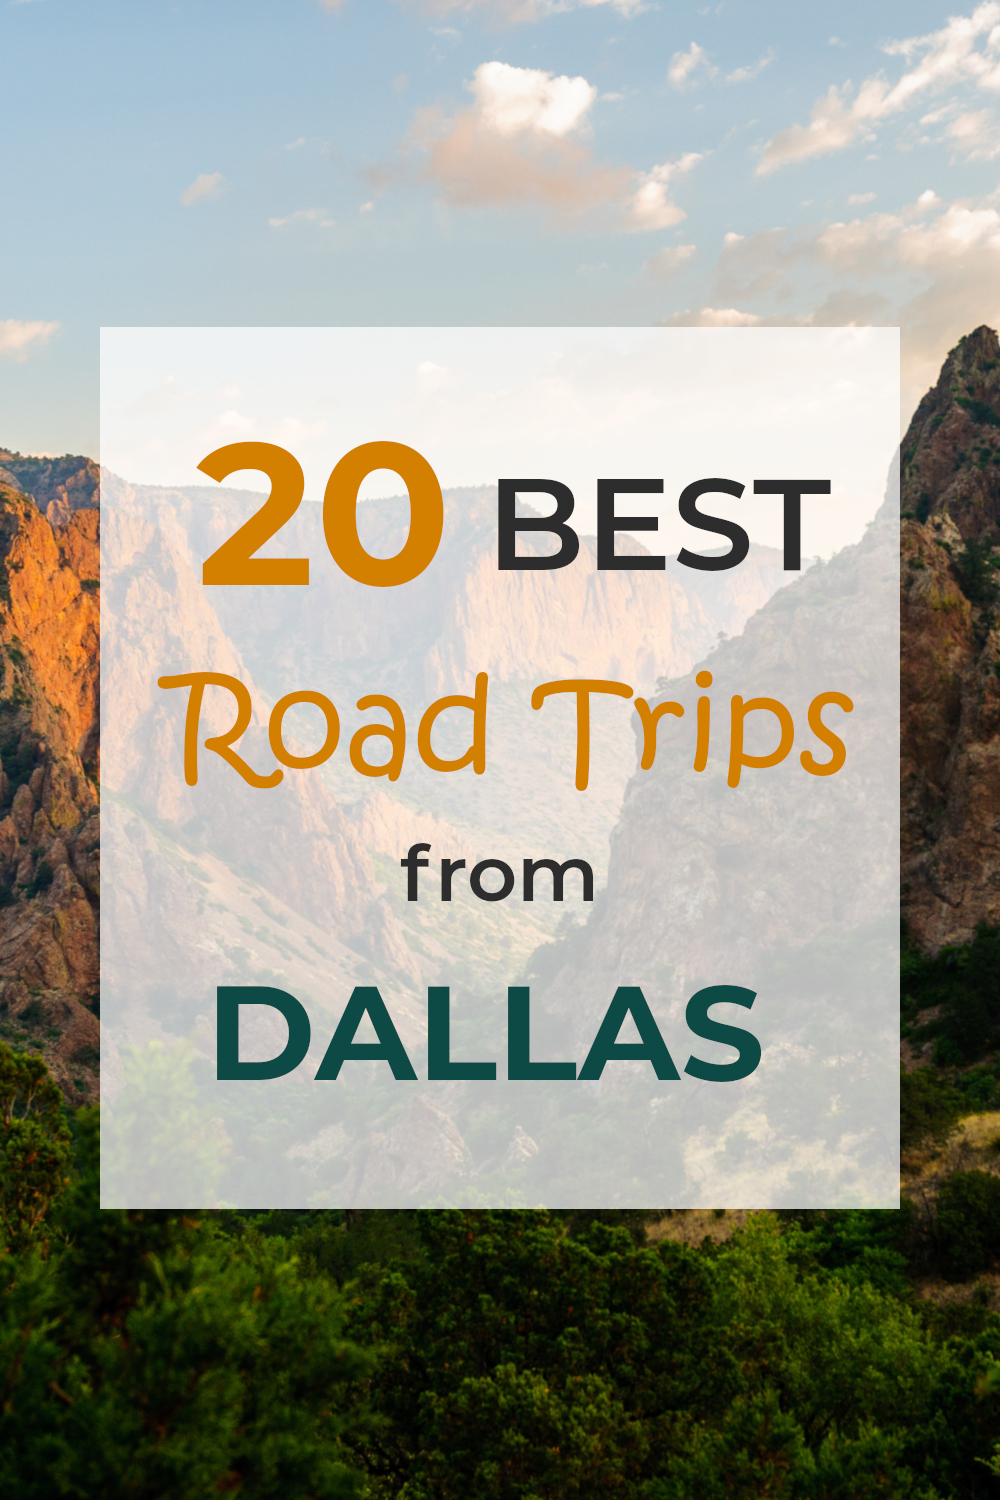 A complete guide to the best road trips from Dallas - from short day drives to week-long road trips to other states.